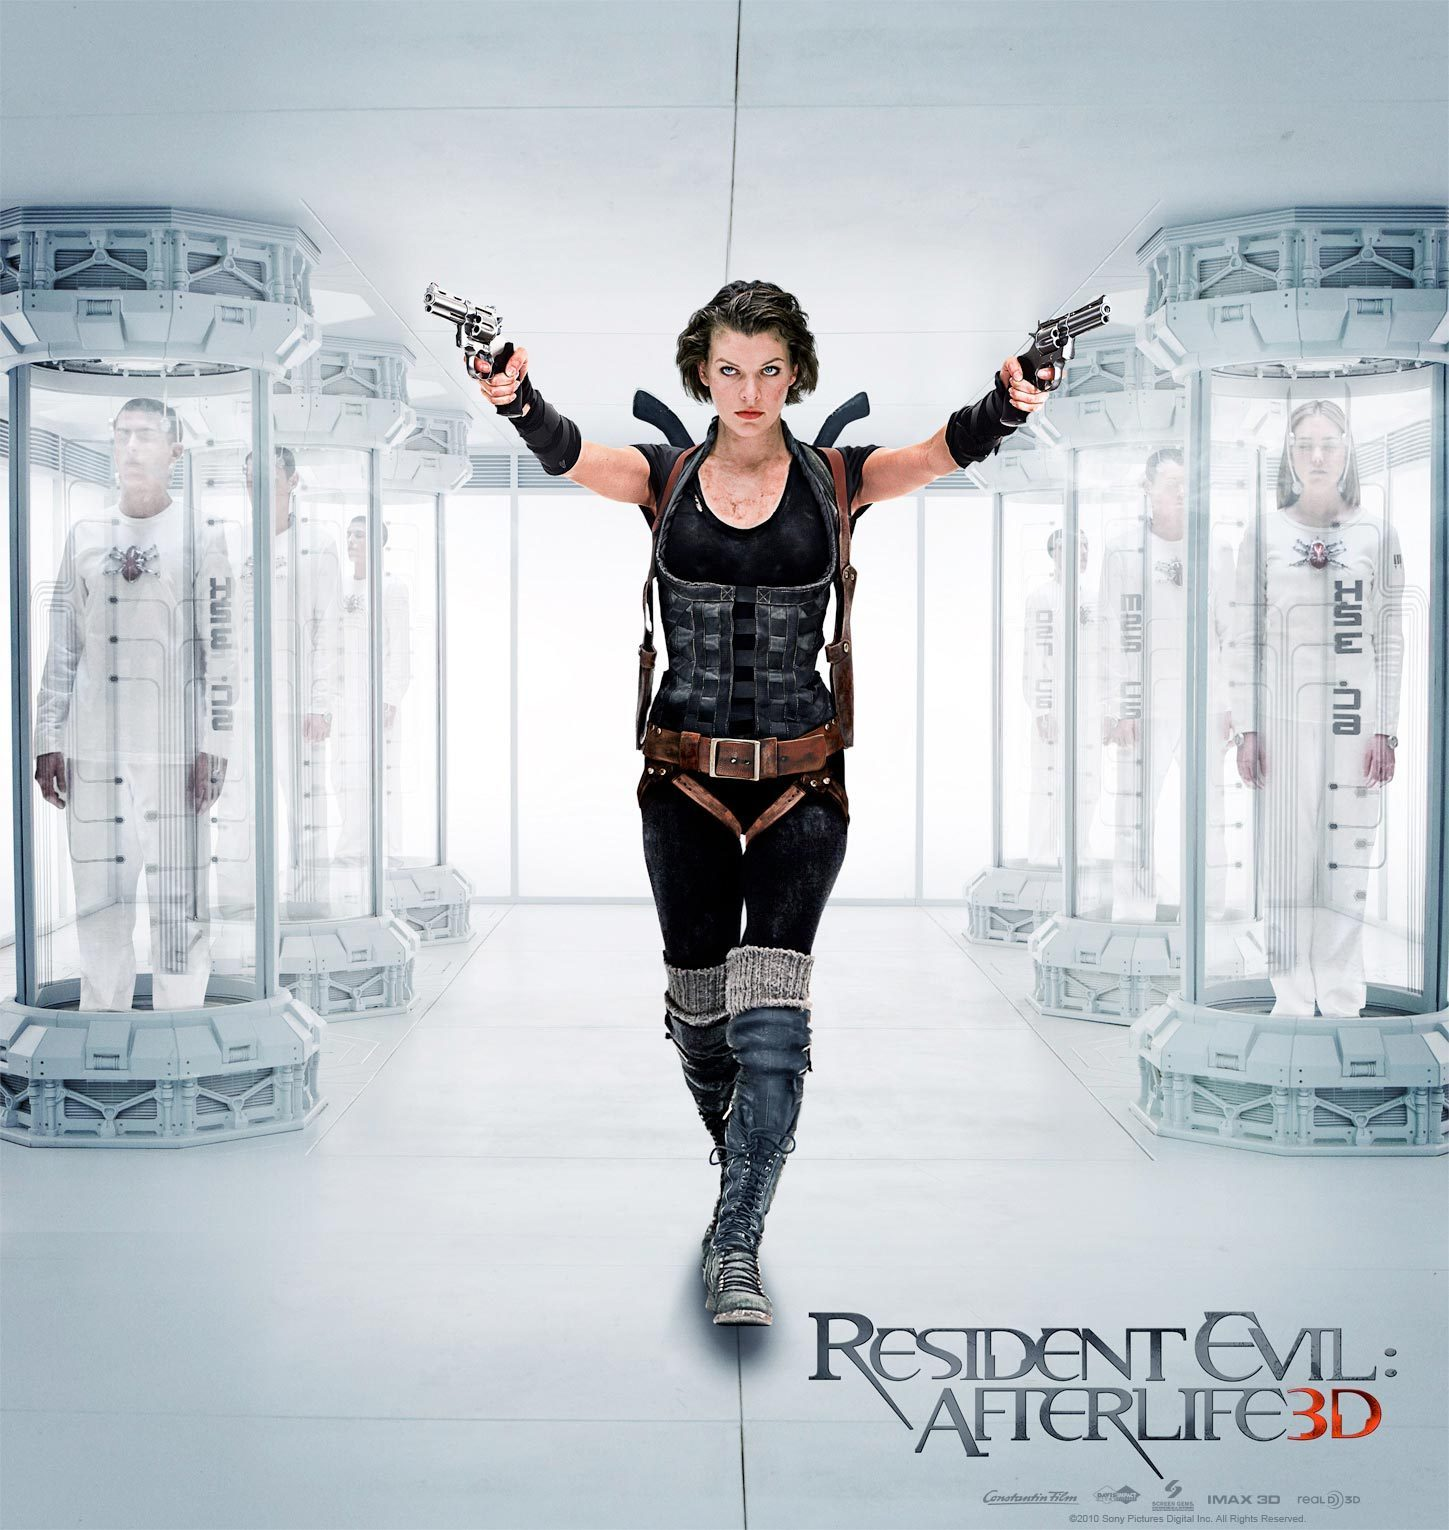 Resident evil movie alice finds arcadia